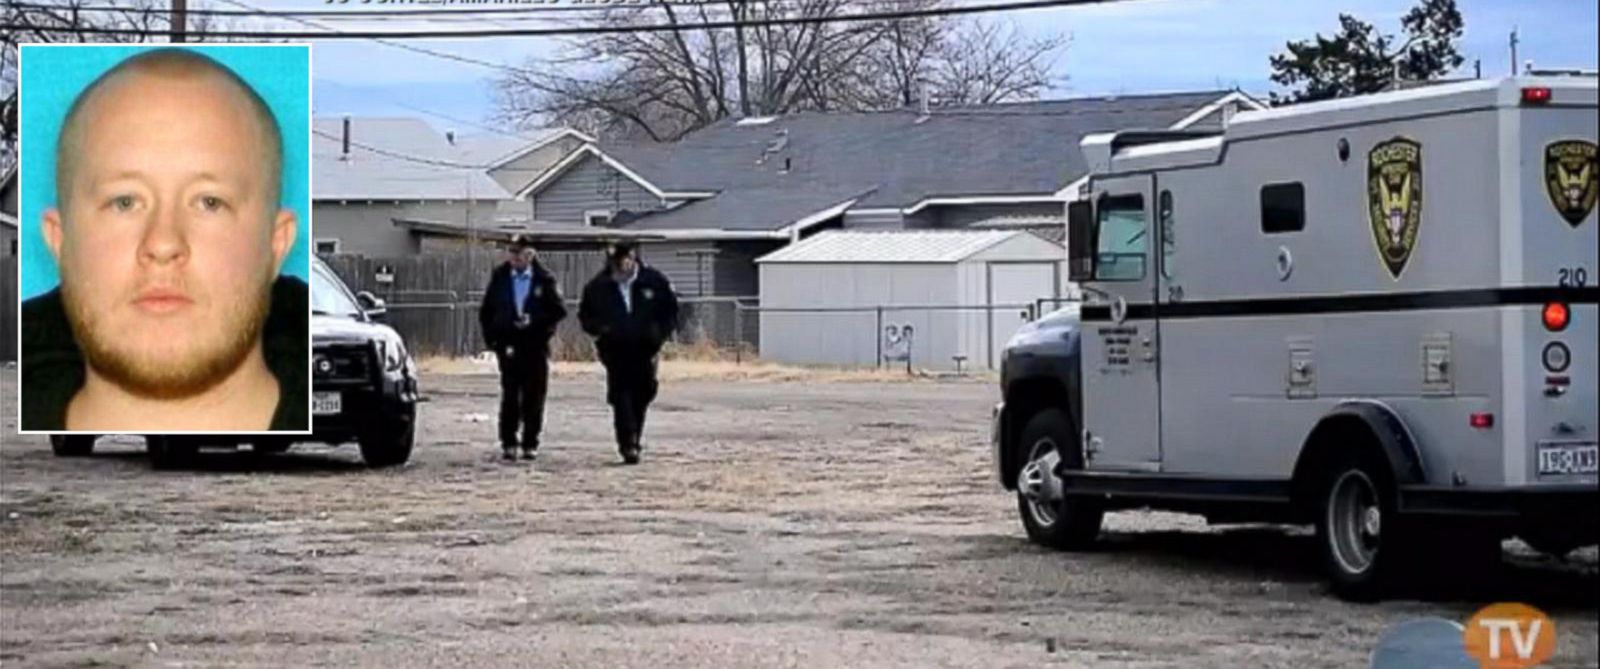 Missing Armored Truck Driver Arrested in Colorado  ABC News